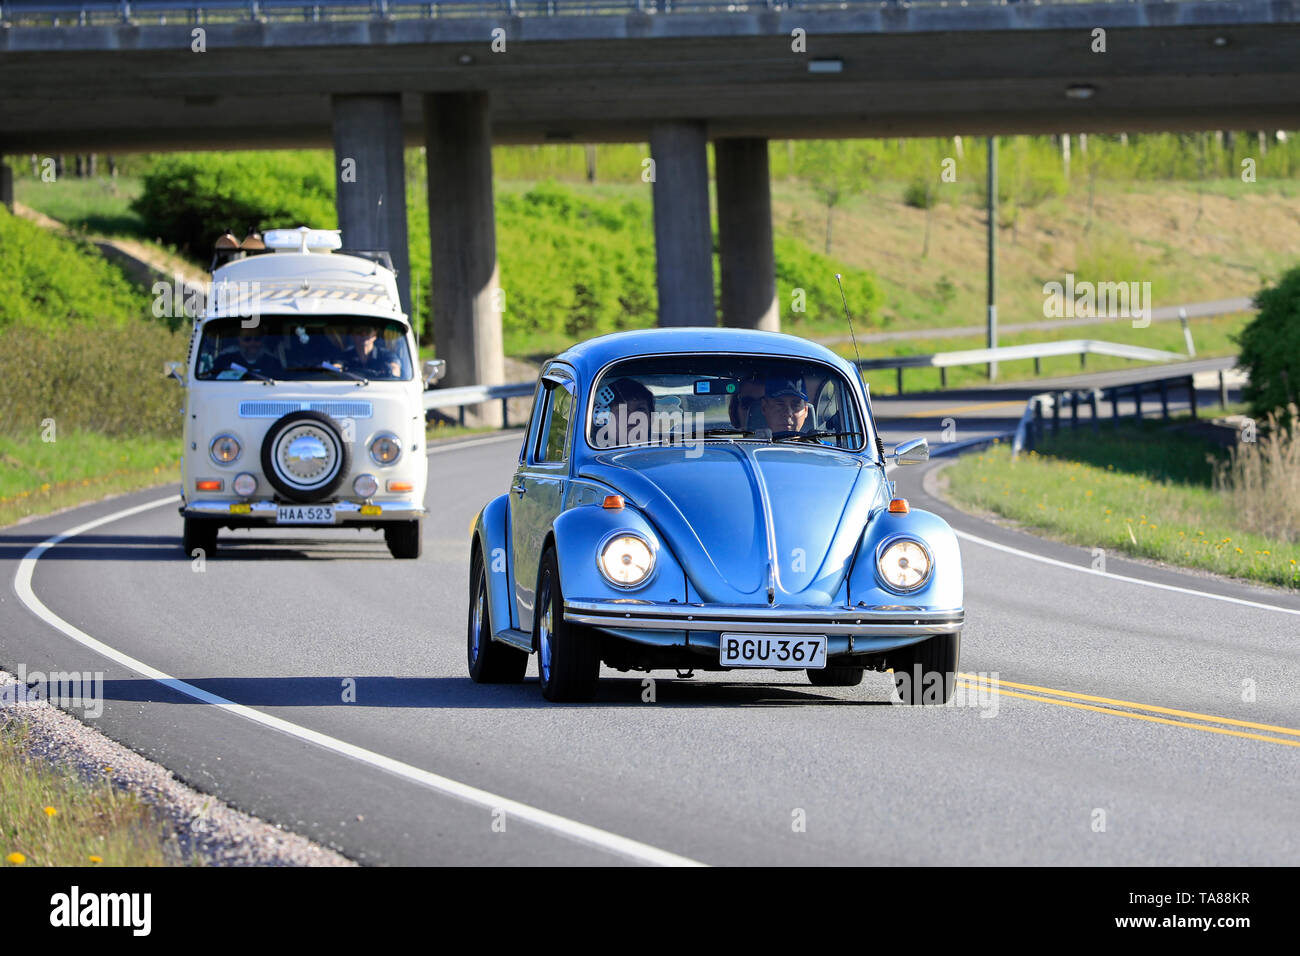 Salo, Finland. May 18, 2019. Classic 1970s Volkswagen Beetle, or Type 1 and white VW camper van, or Type 2 on road on Salon Maisema Cruising 2019. - Stock Image